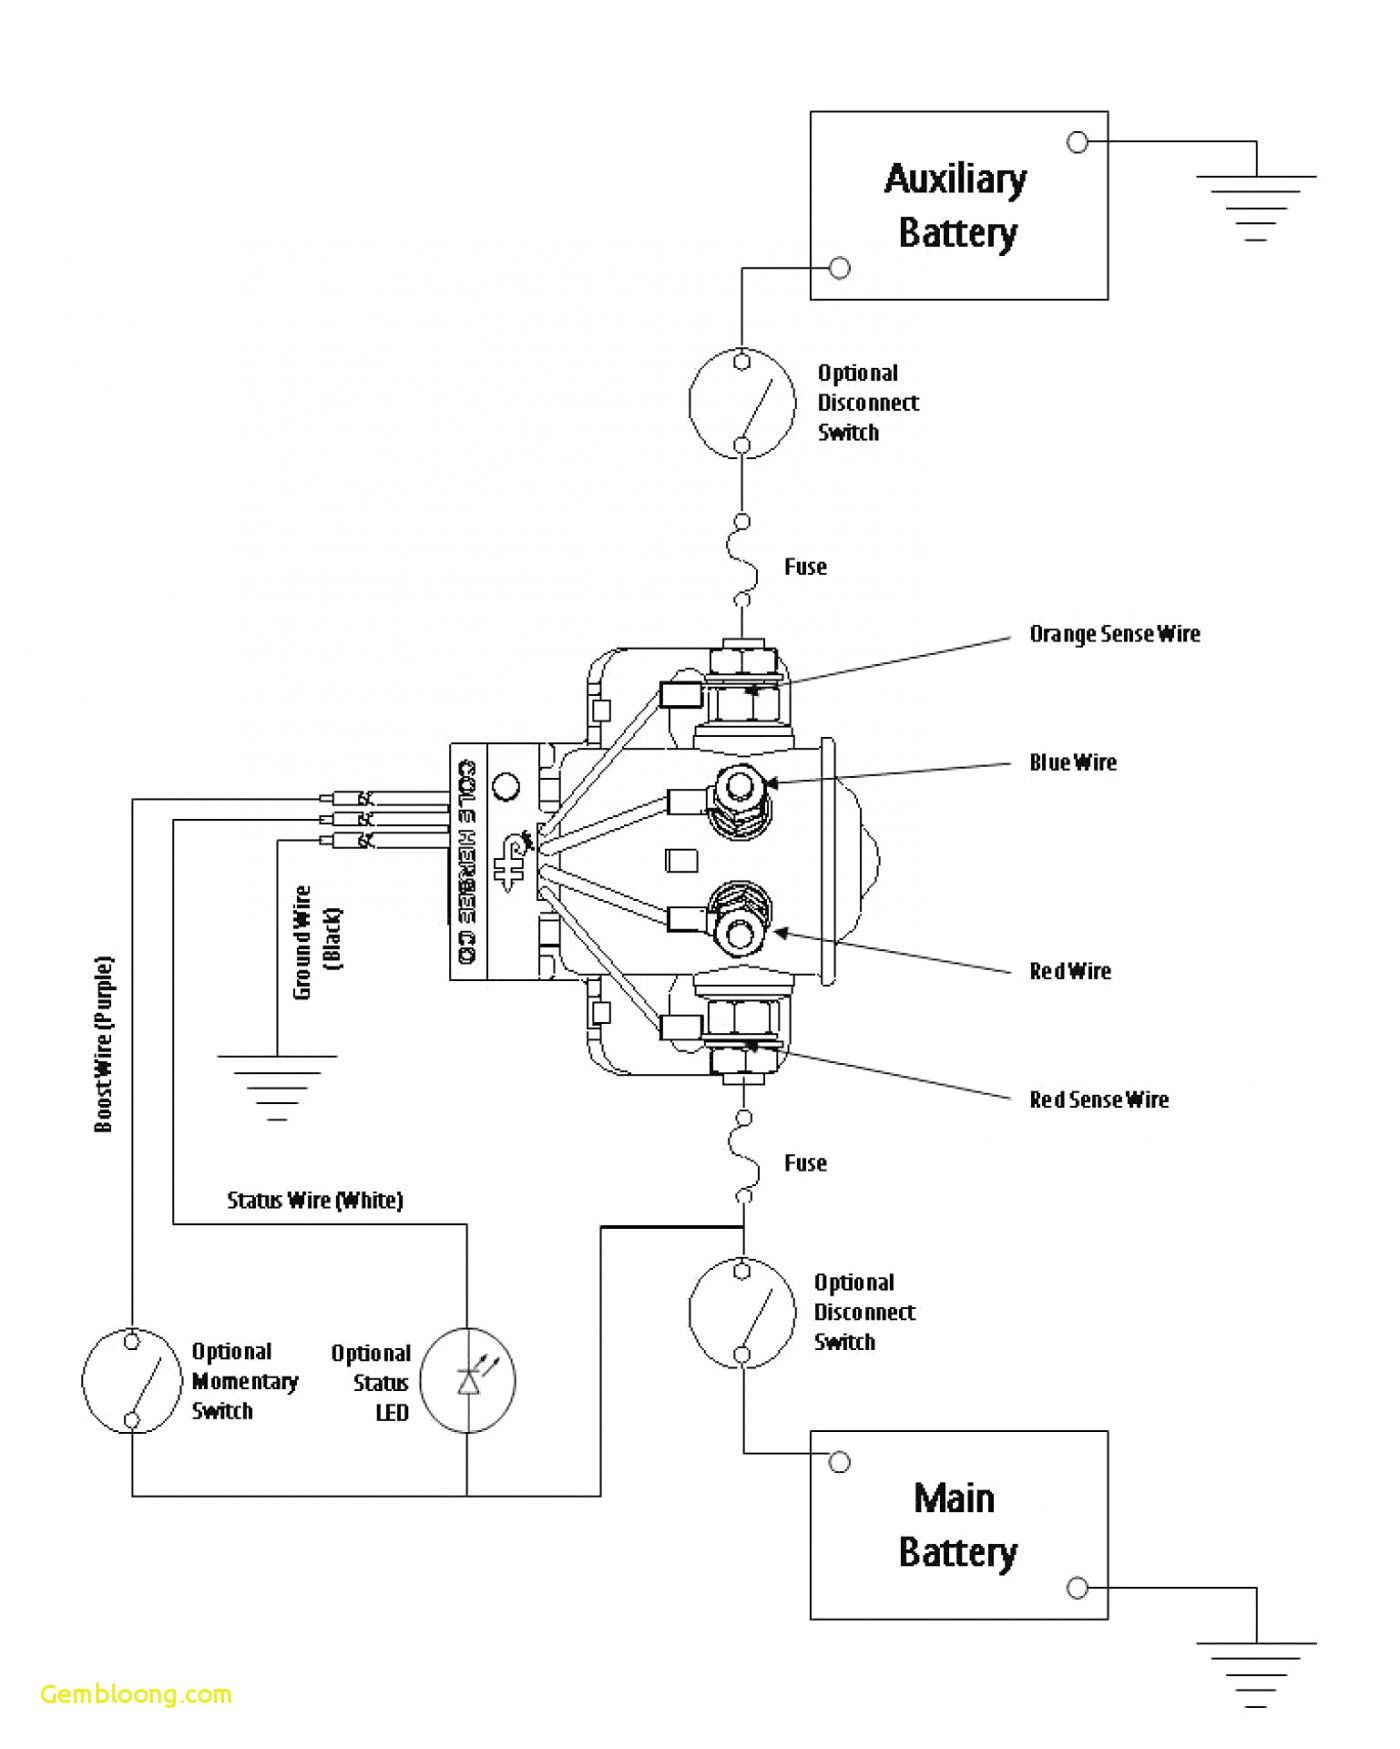 Msd Ignition Wiring Diagrams In Msd Distributor Diagram On Msd Gm Hei Distributor And Coil Wiring Diagram Yahoo Search Results In 2020 Wire Ignition Coil Chevy Ls